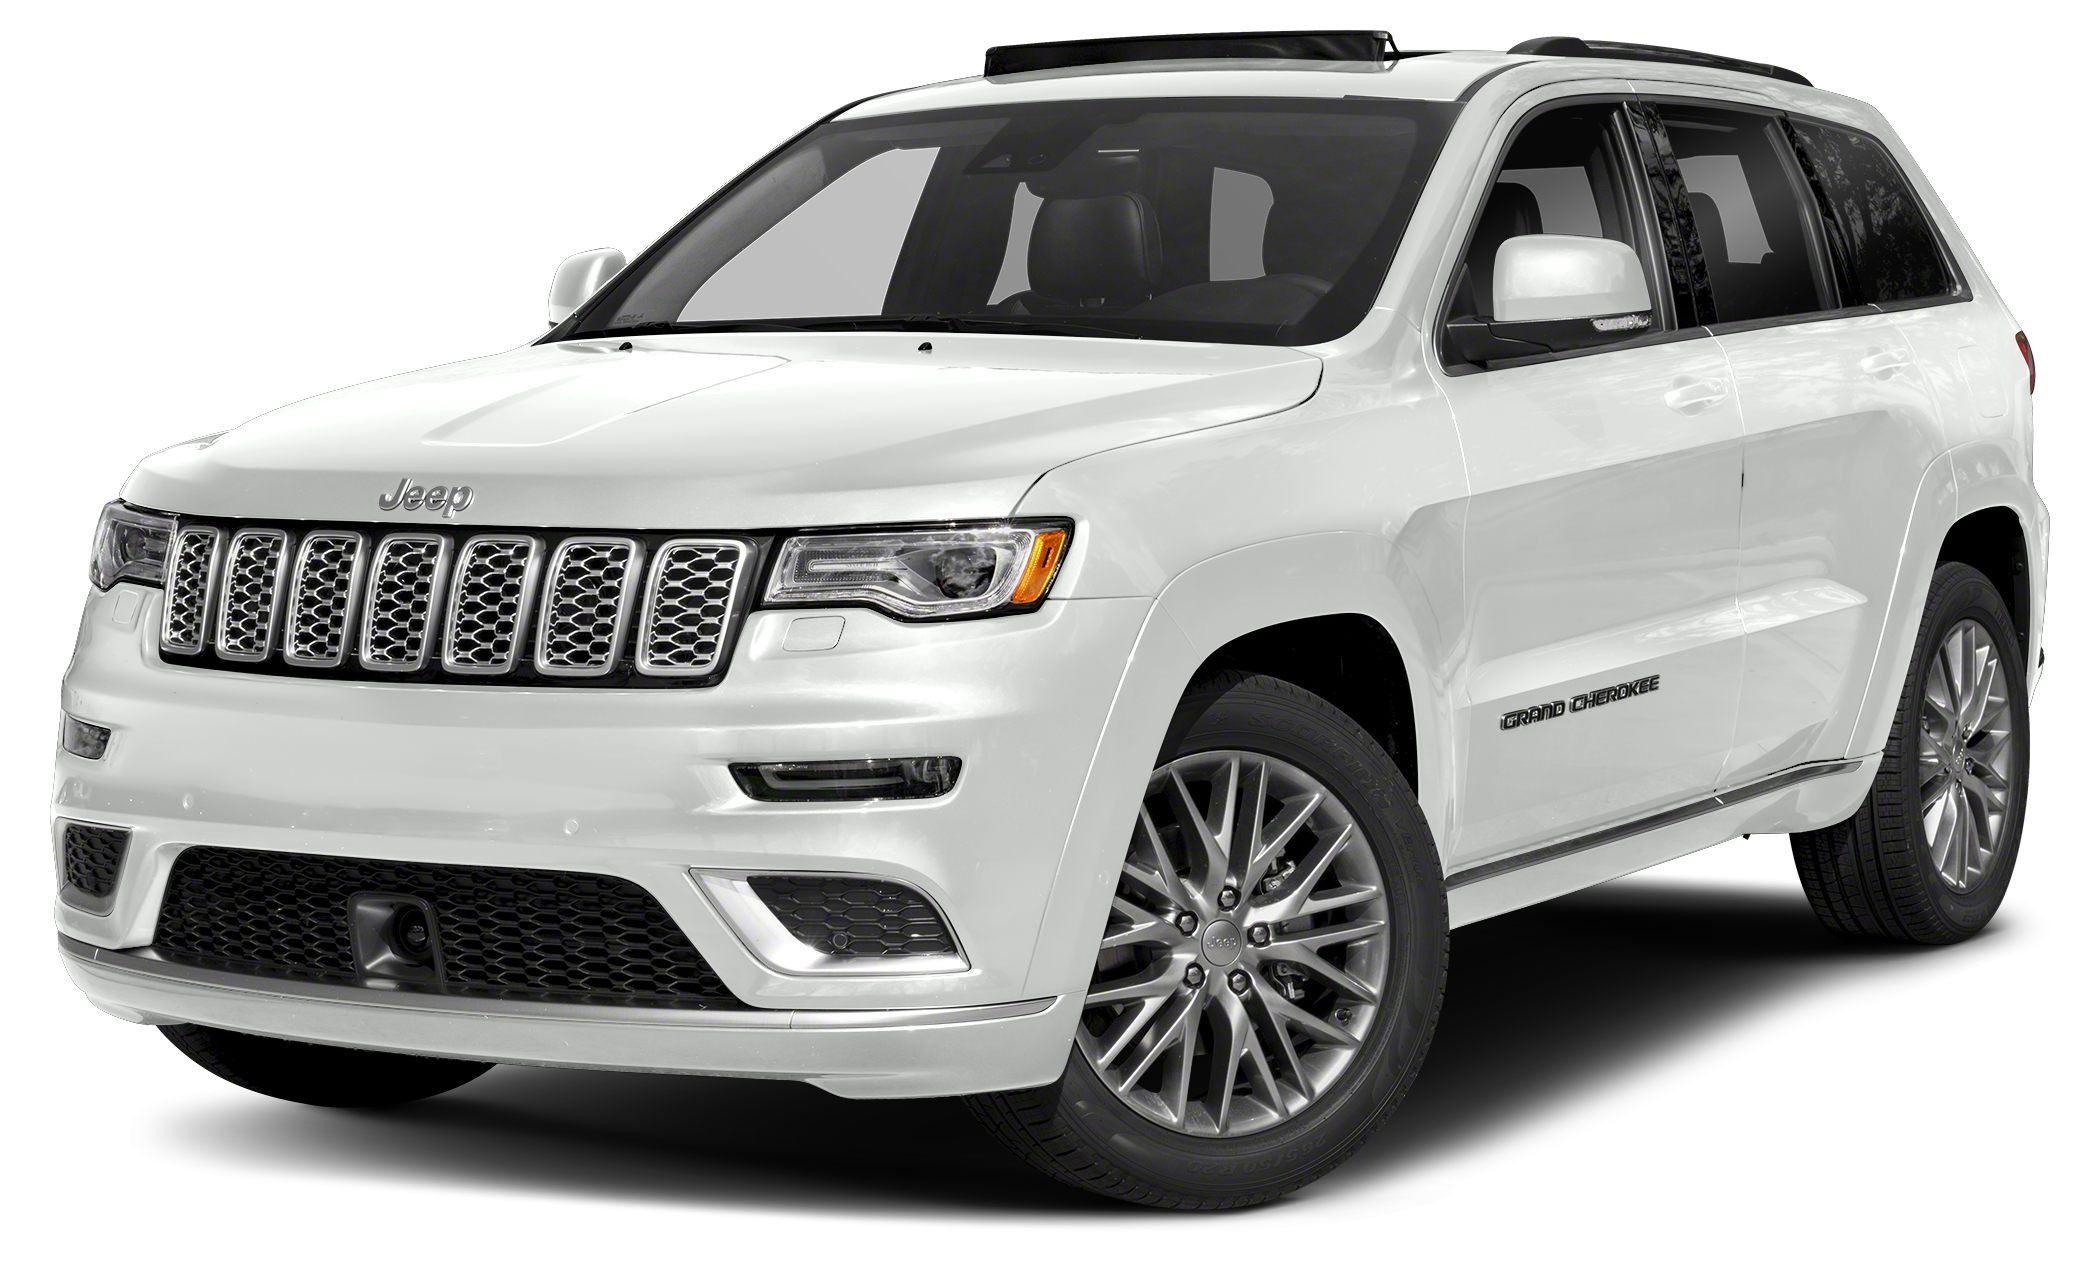 2017 Jeep Grand Cherokee Summit This gas-saving 2017 Jeep Grand Cherokee Summit will get you where